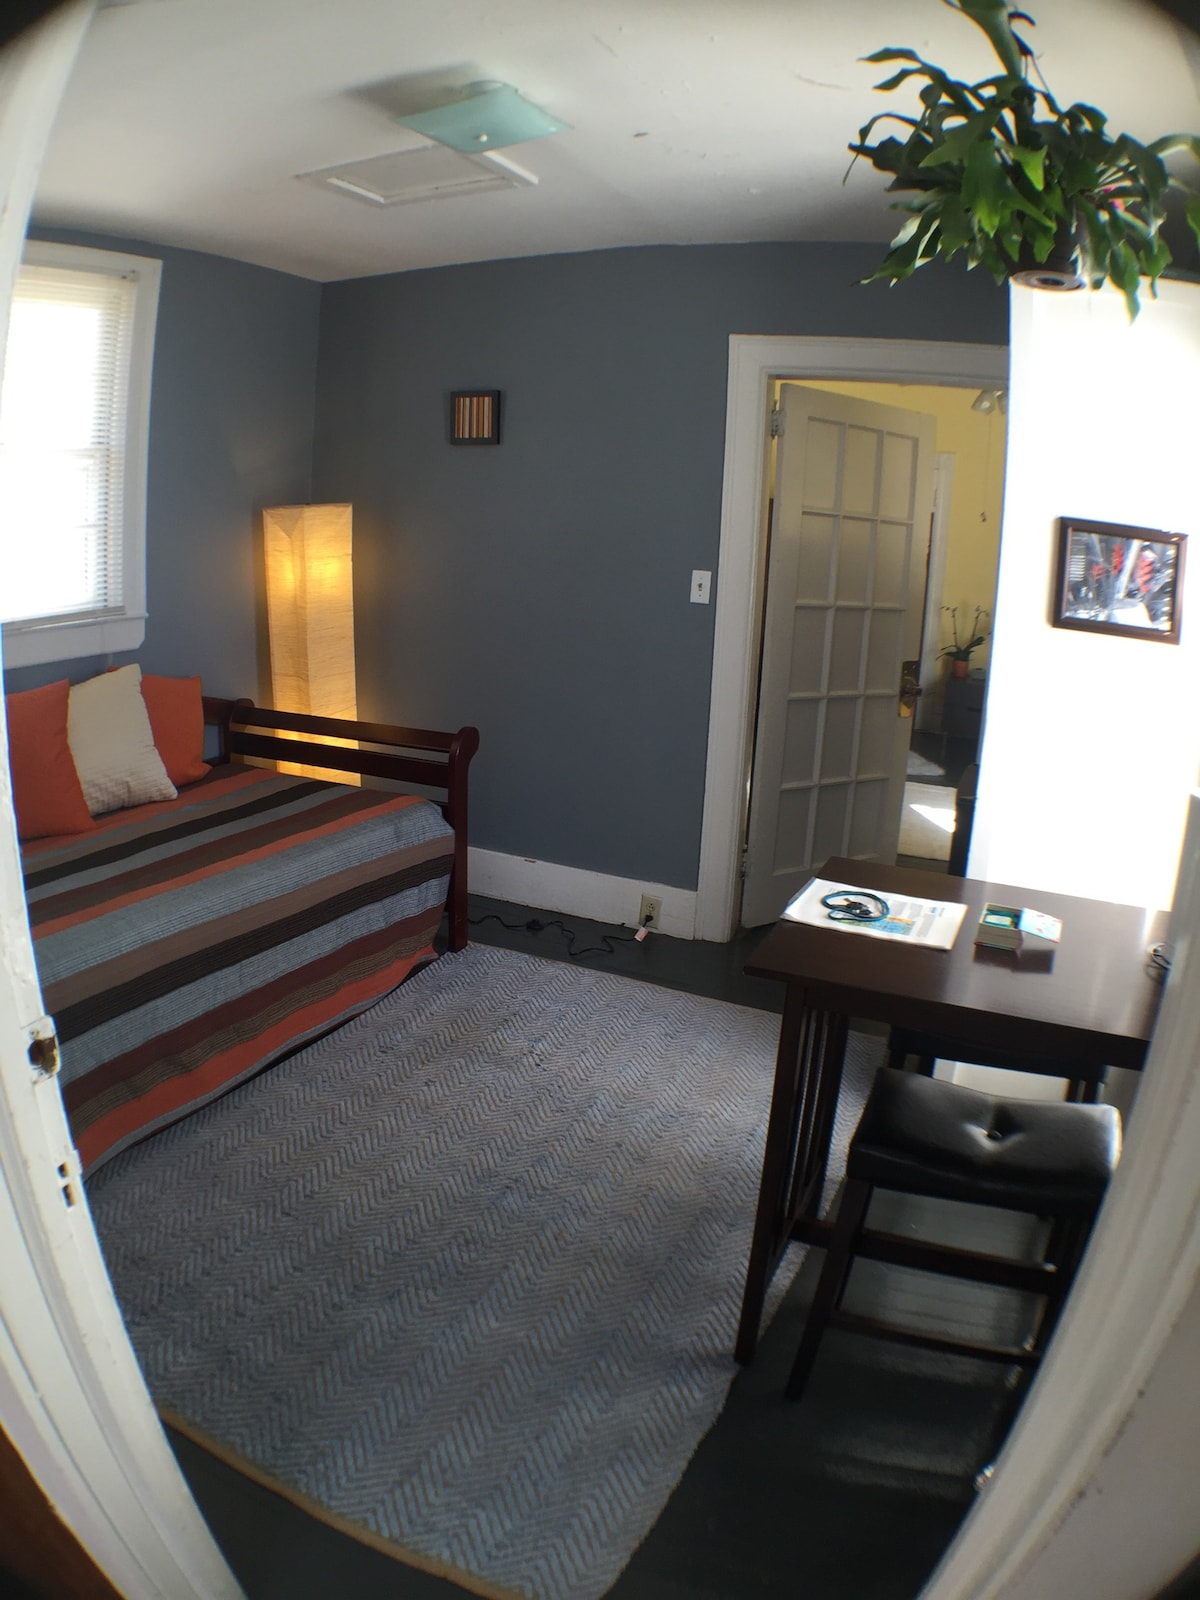 Second (smaller room) with view of daybed and breakfast table.